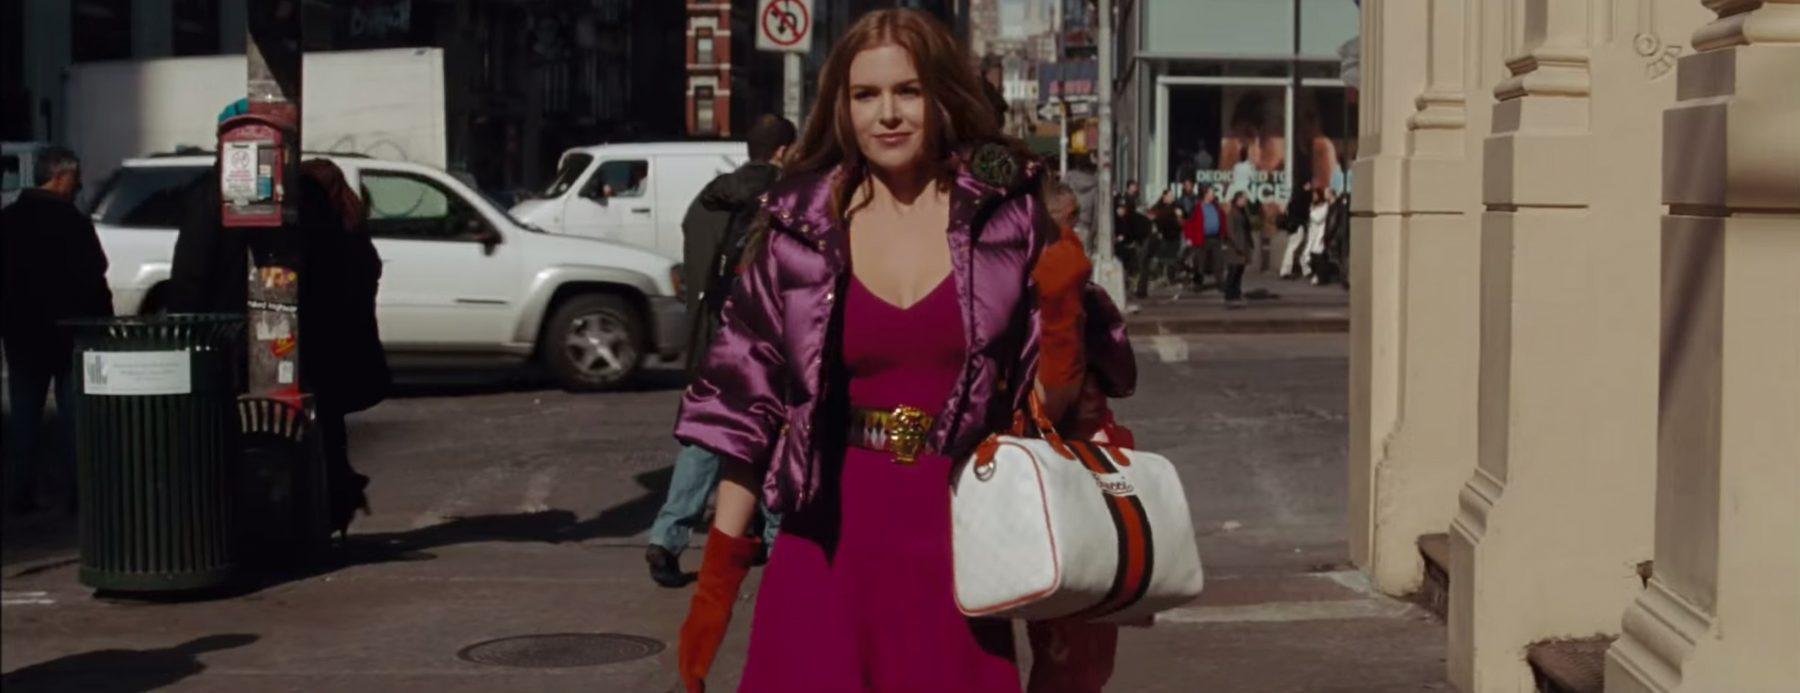 White Gucci bag from Confessions of a Shopaholic (2009)